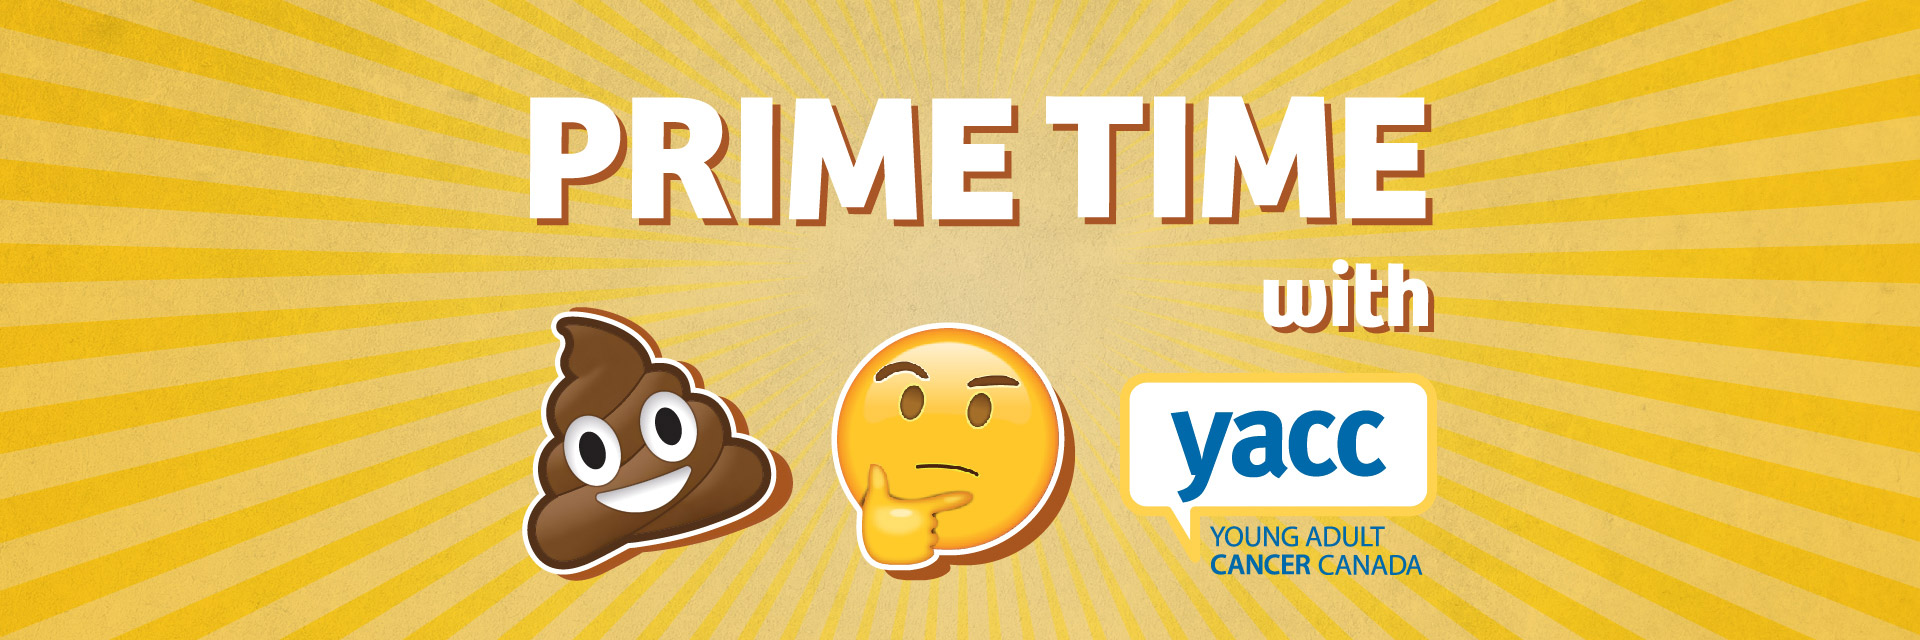 Prime Time for Young Adult Cancer Canada